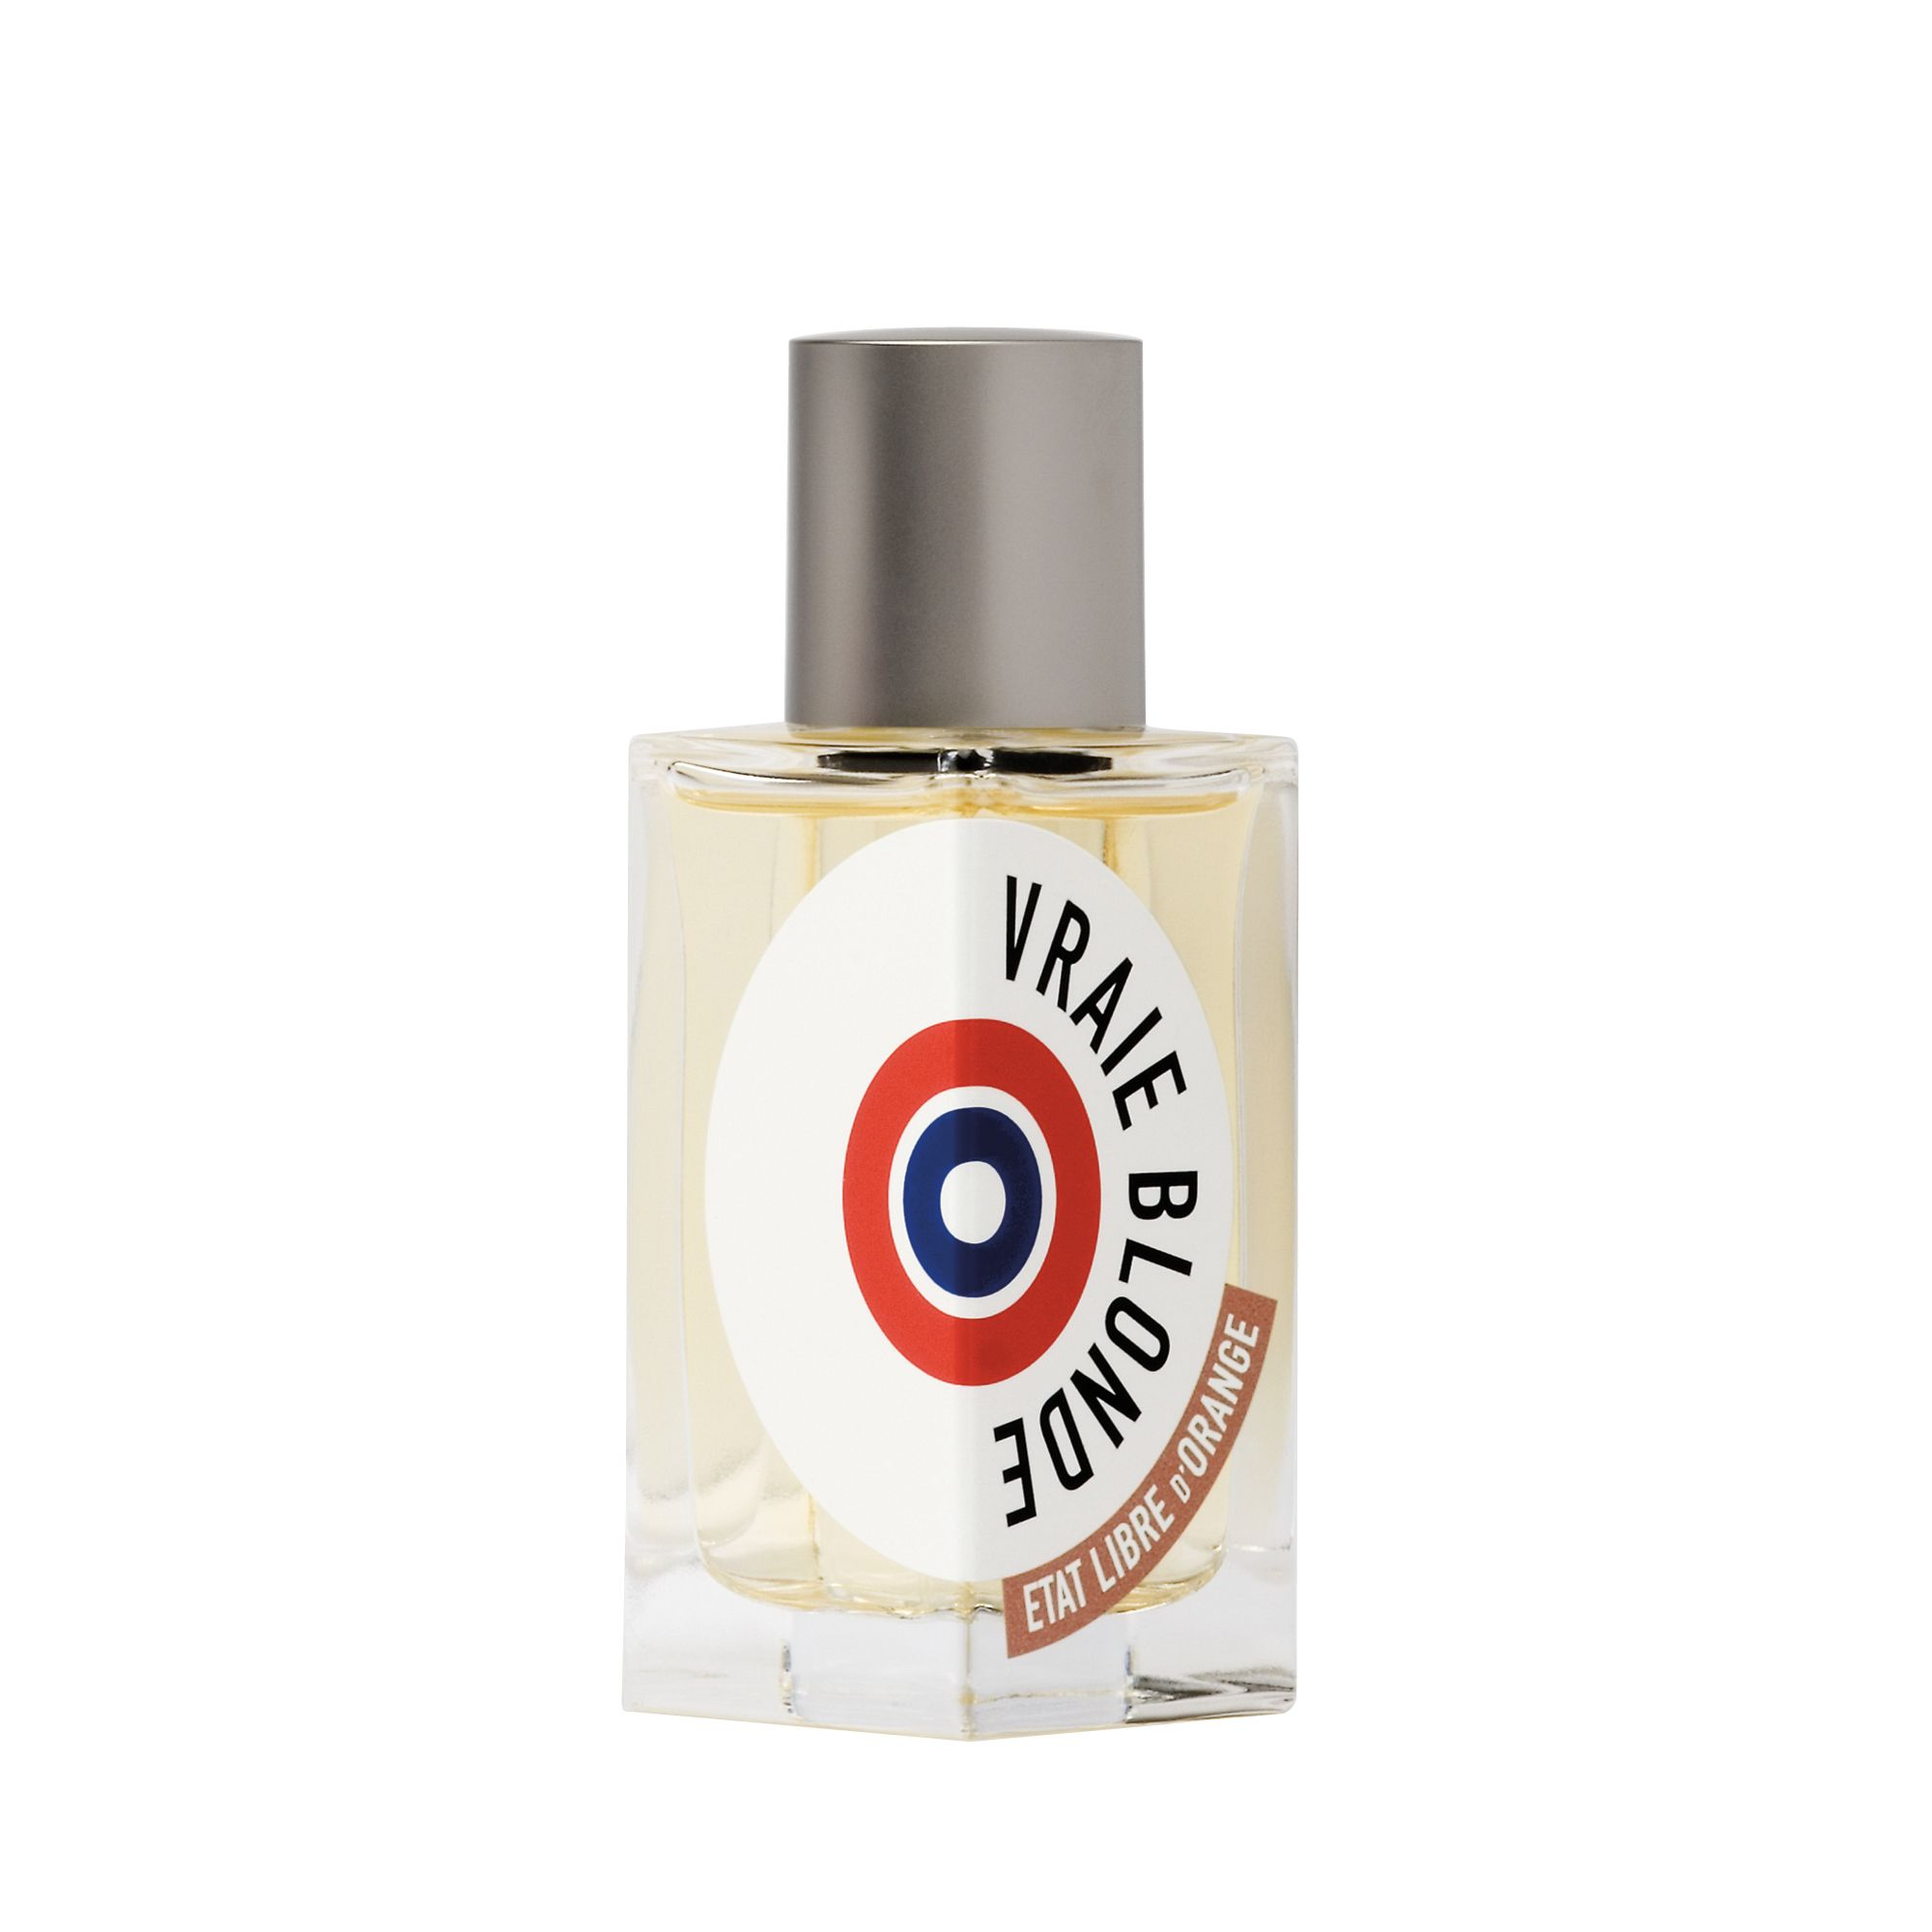 Etat Libre d'Orange Etat Libre d'Orange Vraie Blonde Eau de Parfum 50ml